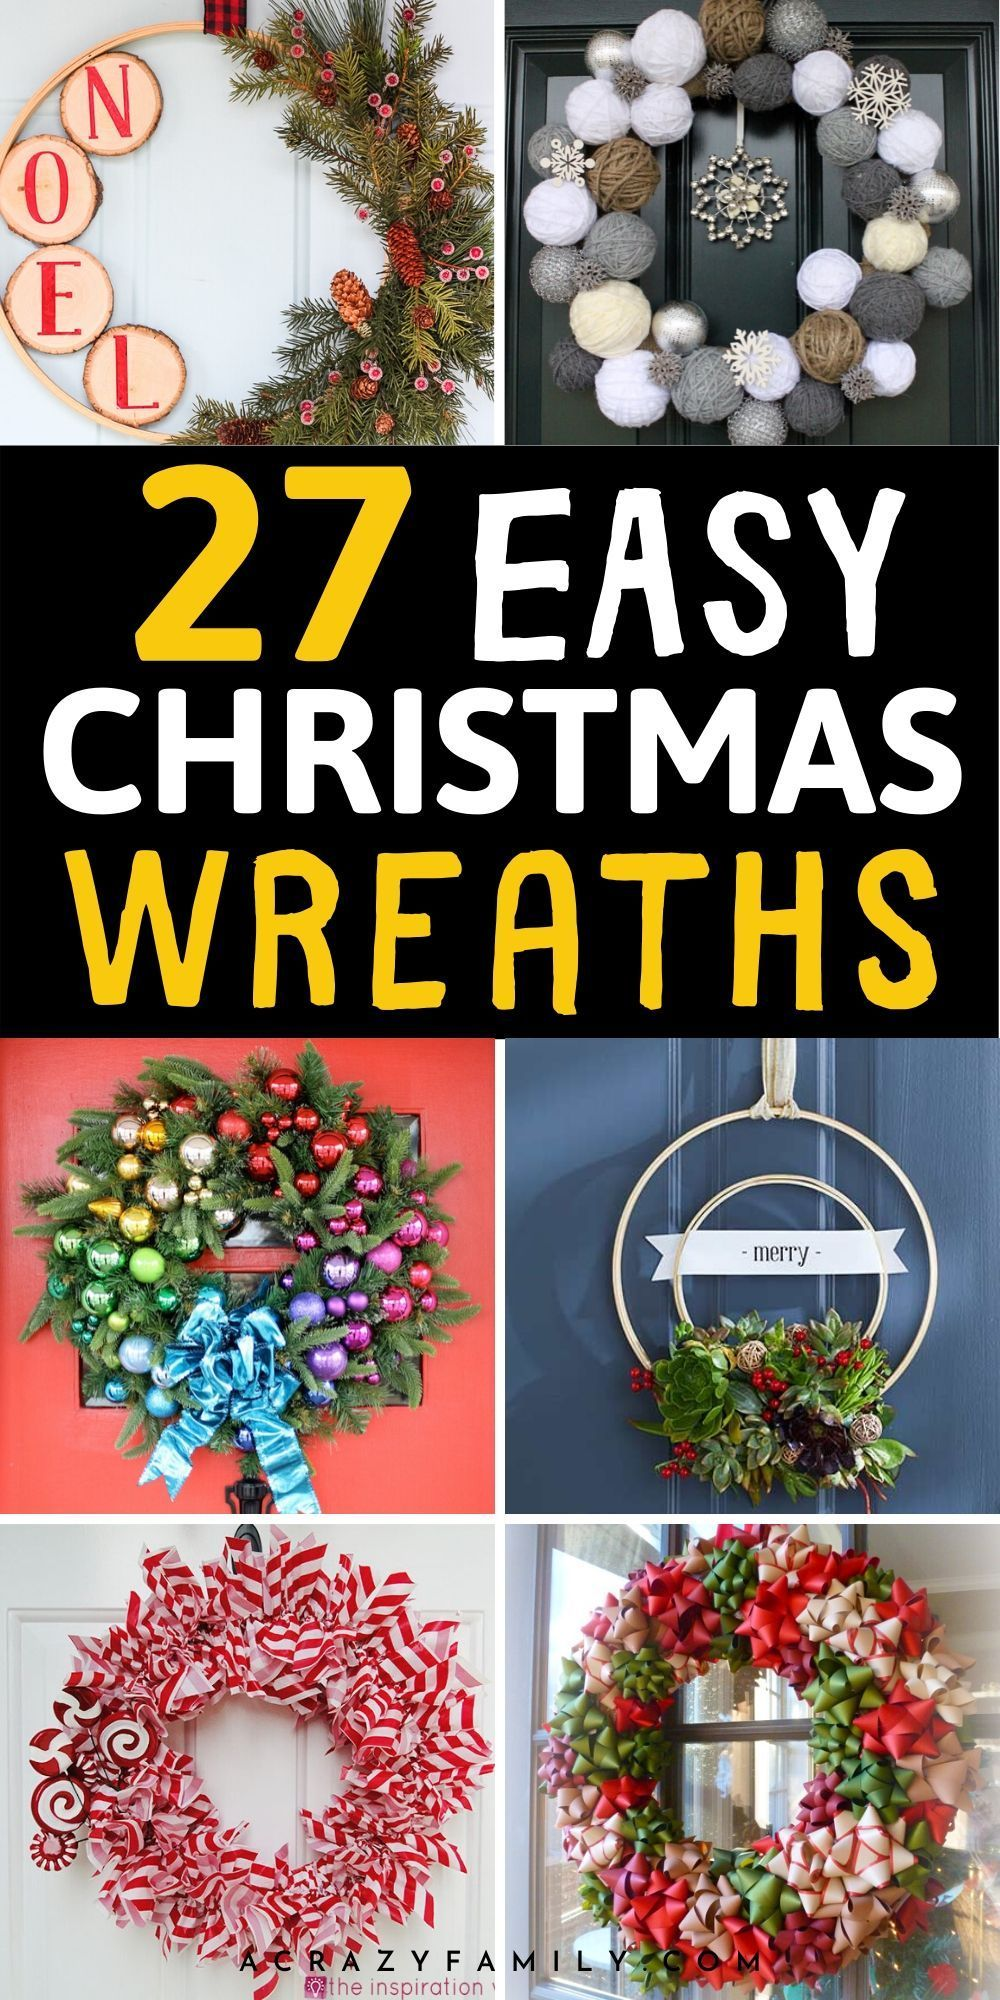 Photo of 30+ Super Easy Festive DIY Christmas Wreaths